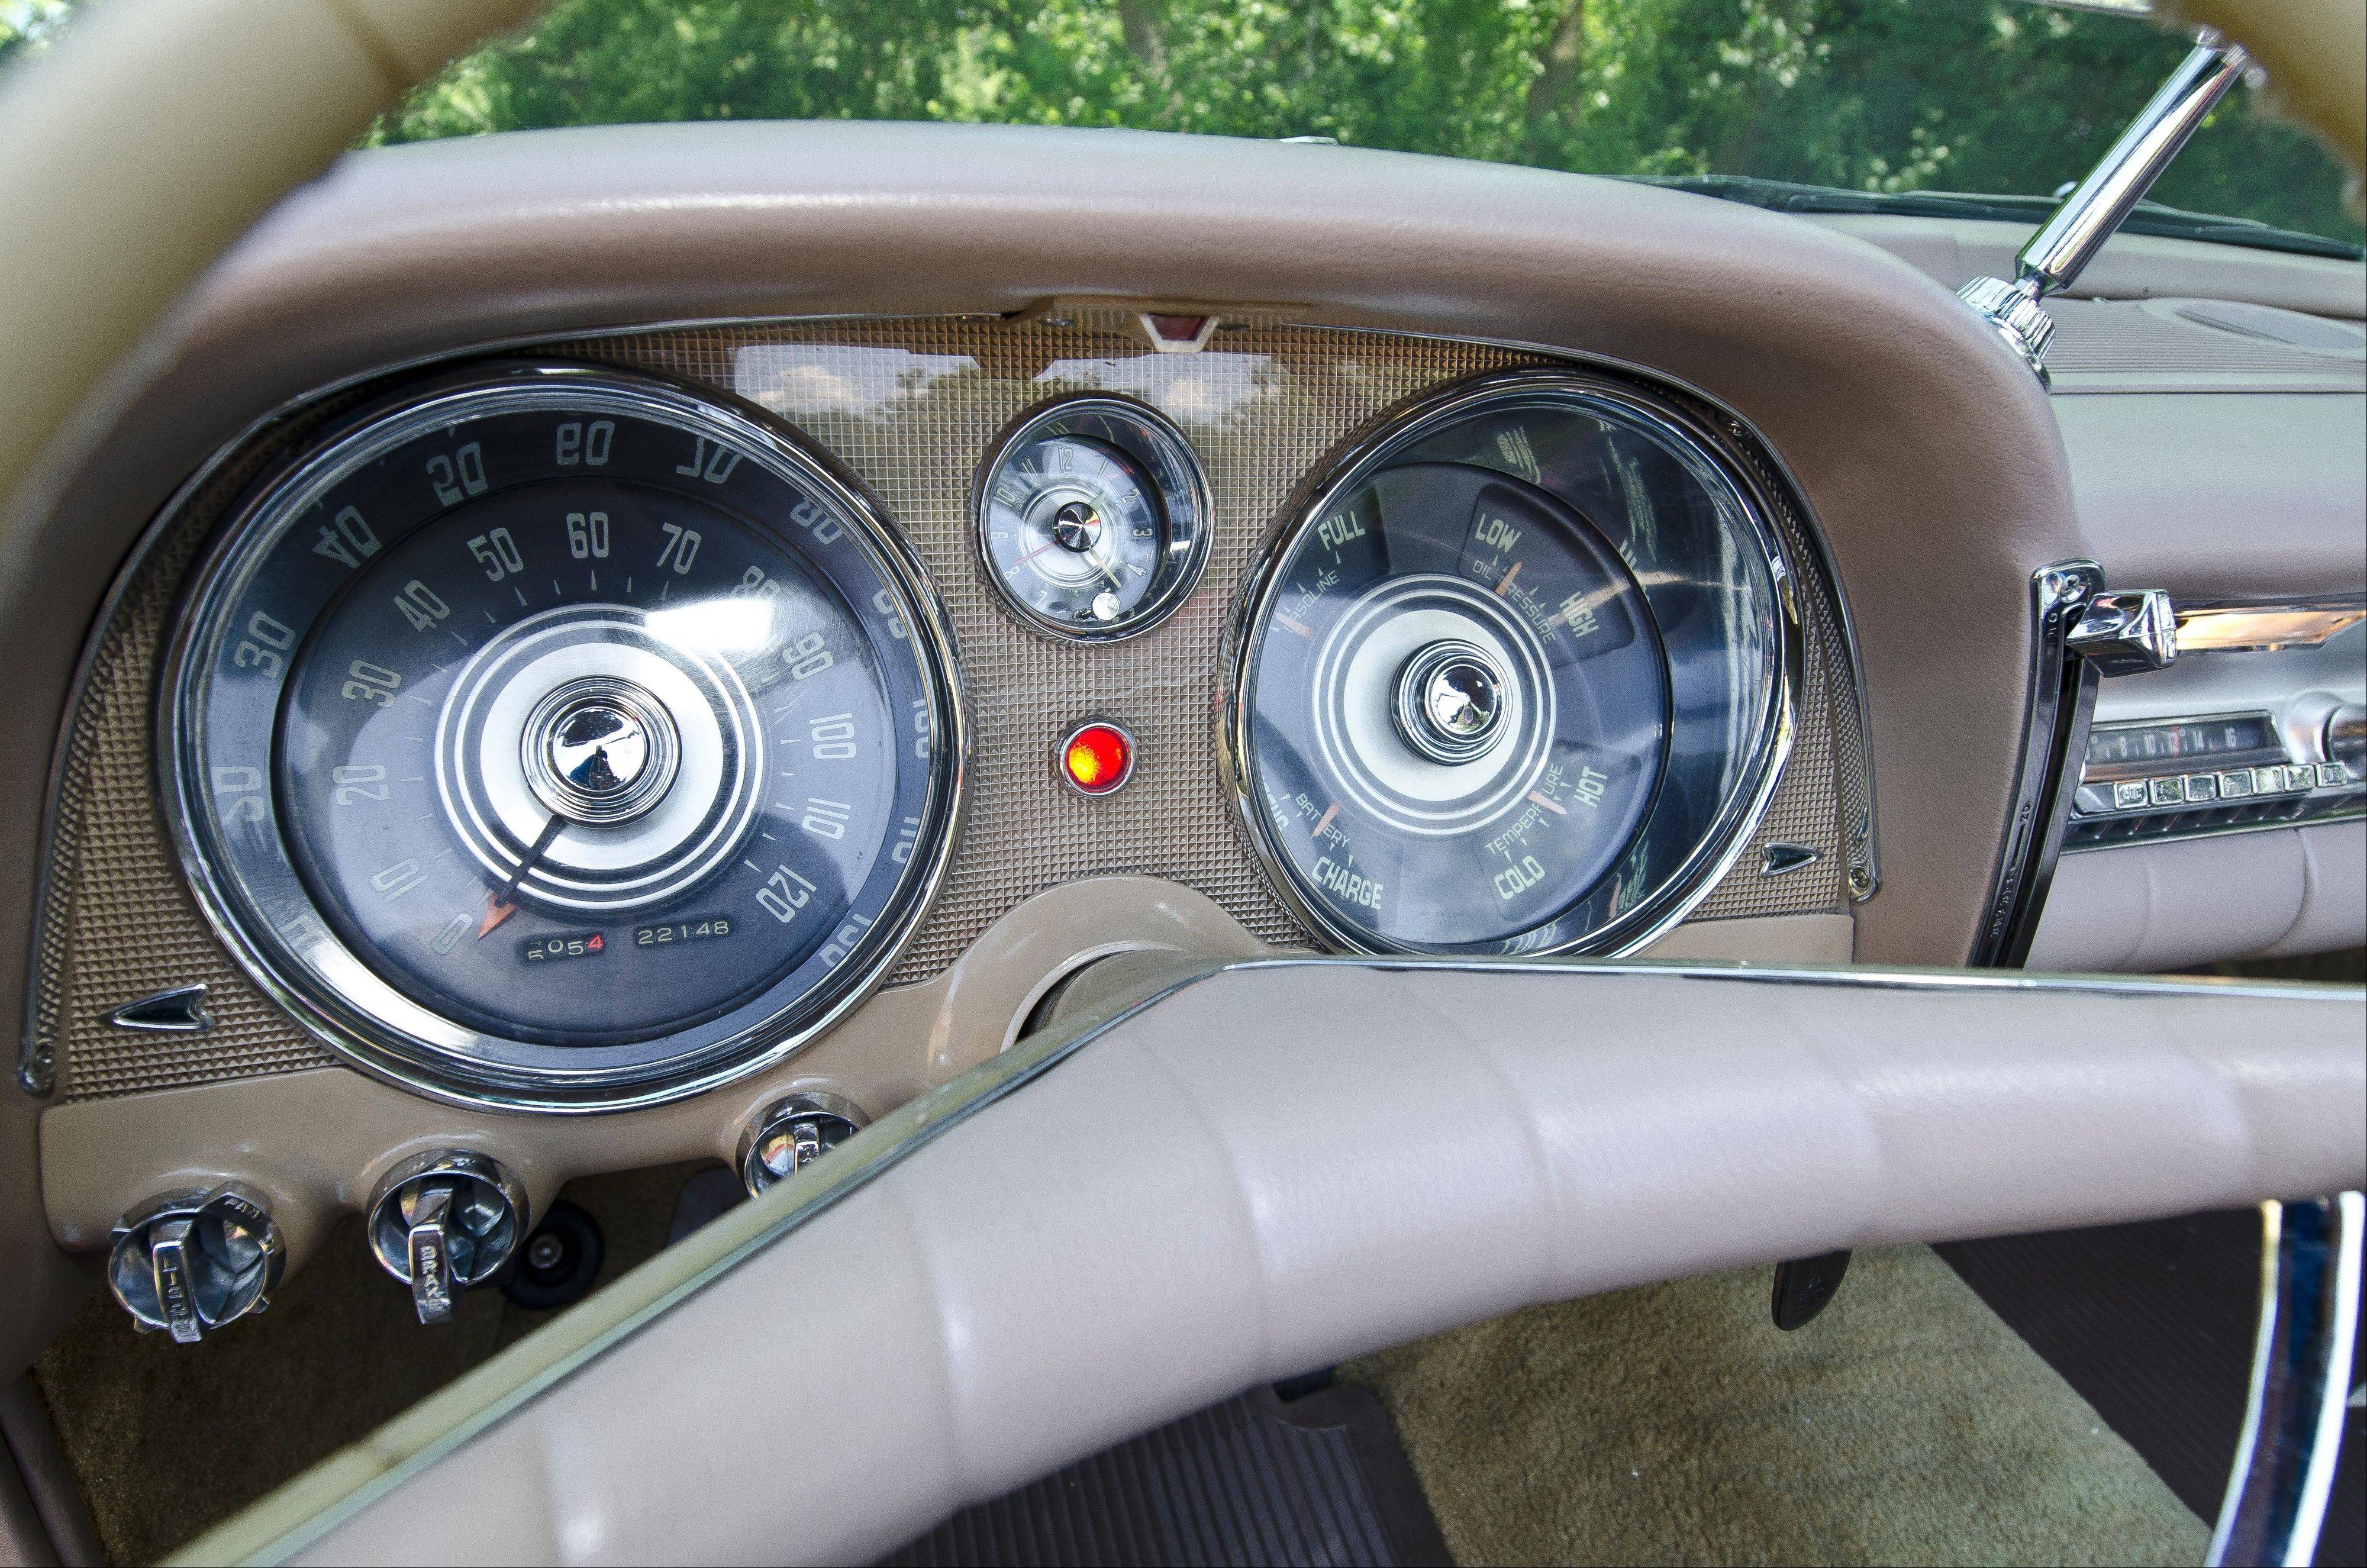 The Imperial's gauge cluster and push button controls take design cues from the aviation industry.